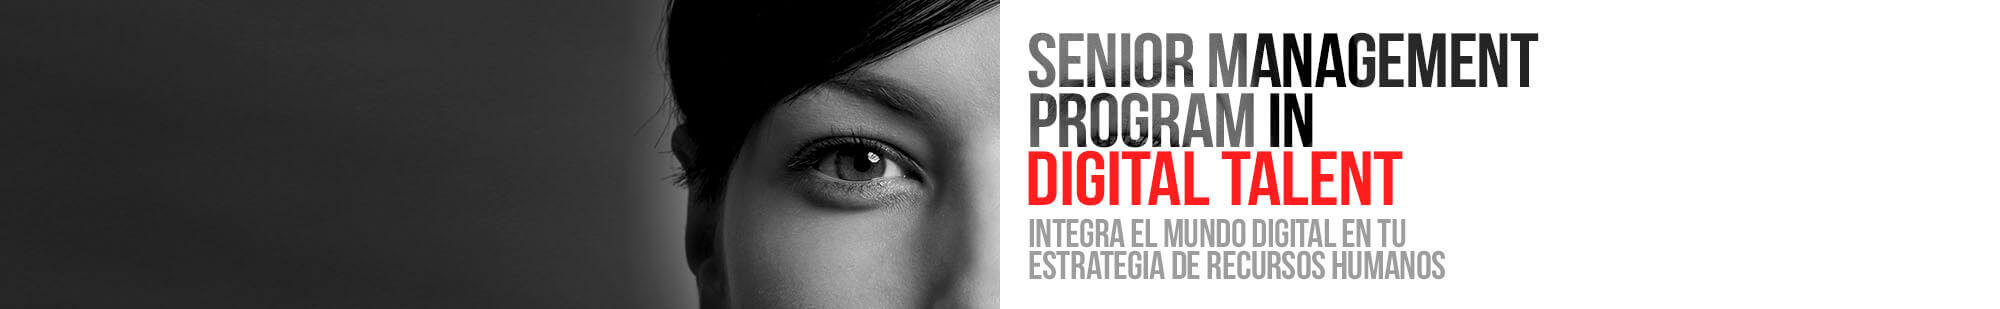 Senior Management Program in Digital Talent